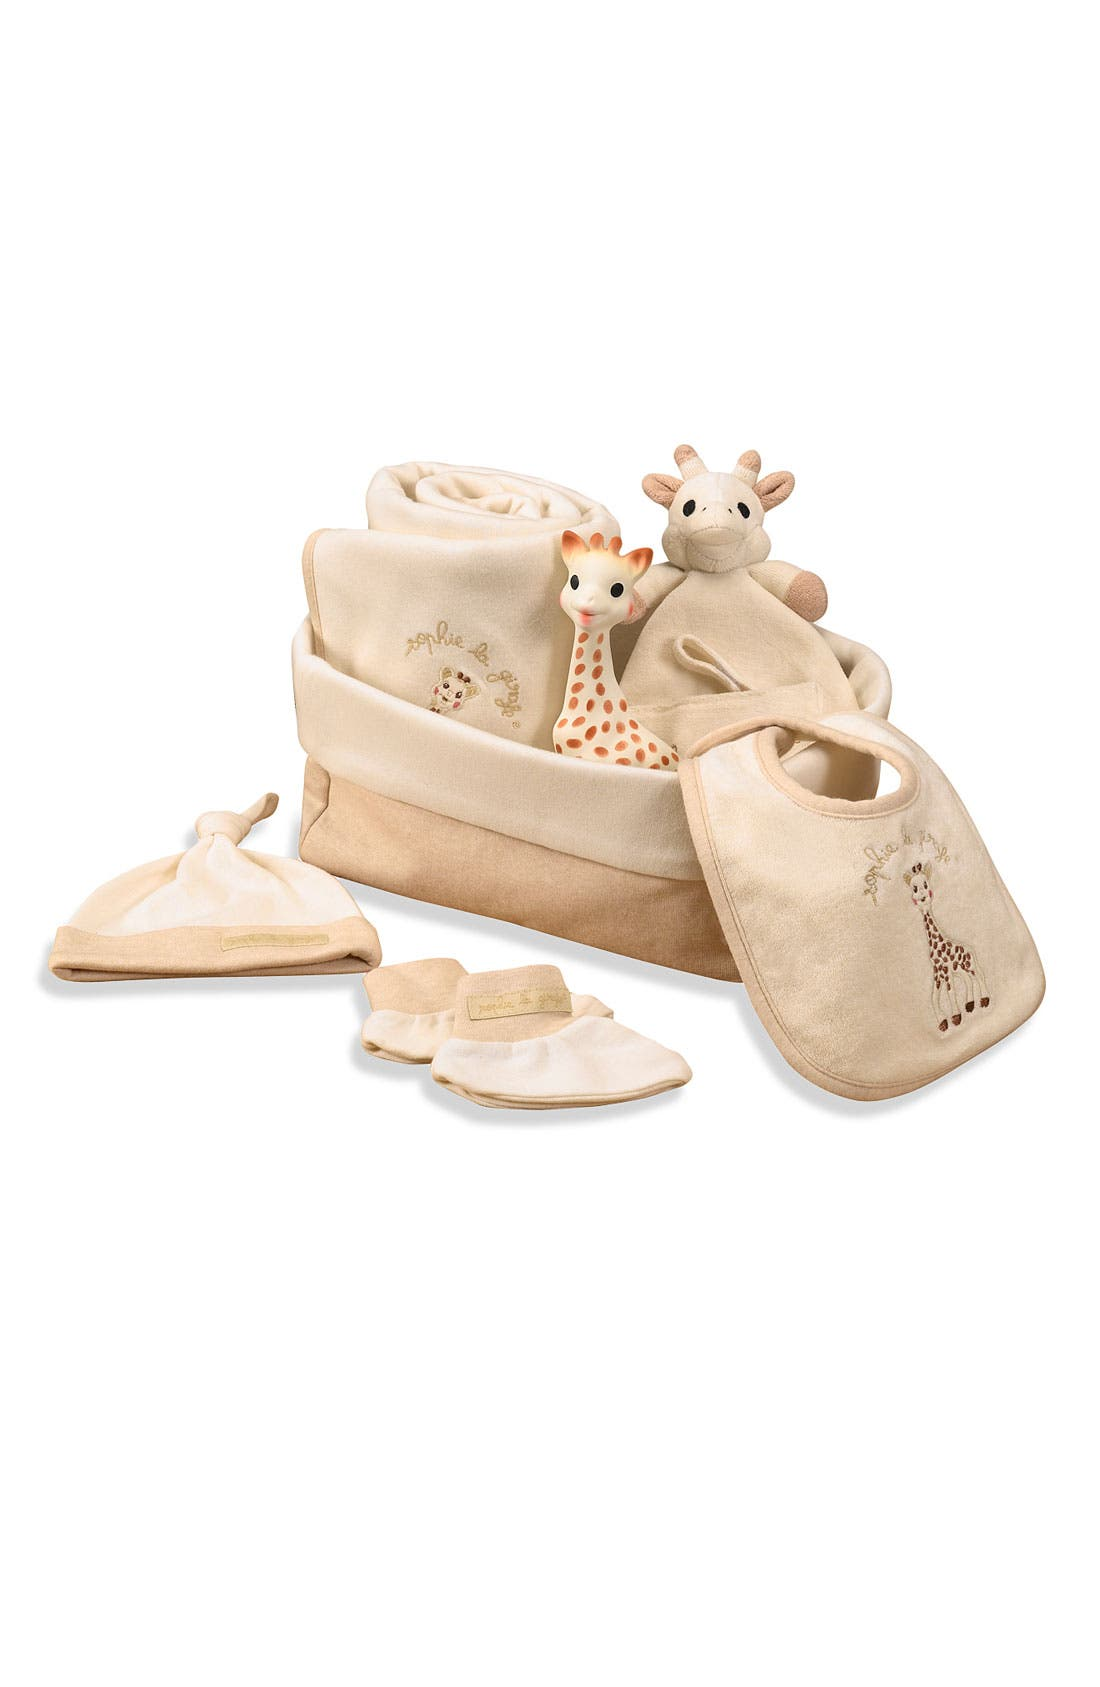 Alternate Image 1 Selected - Sophie la Girafe 'My First Hours' Gift Set